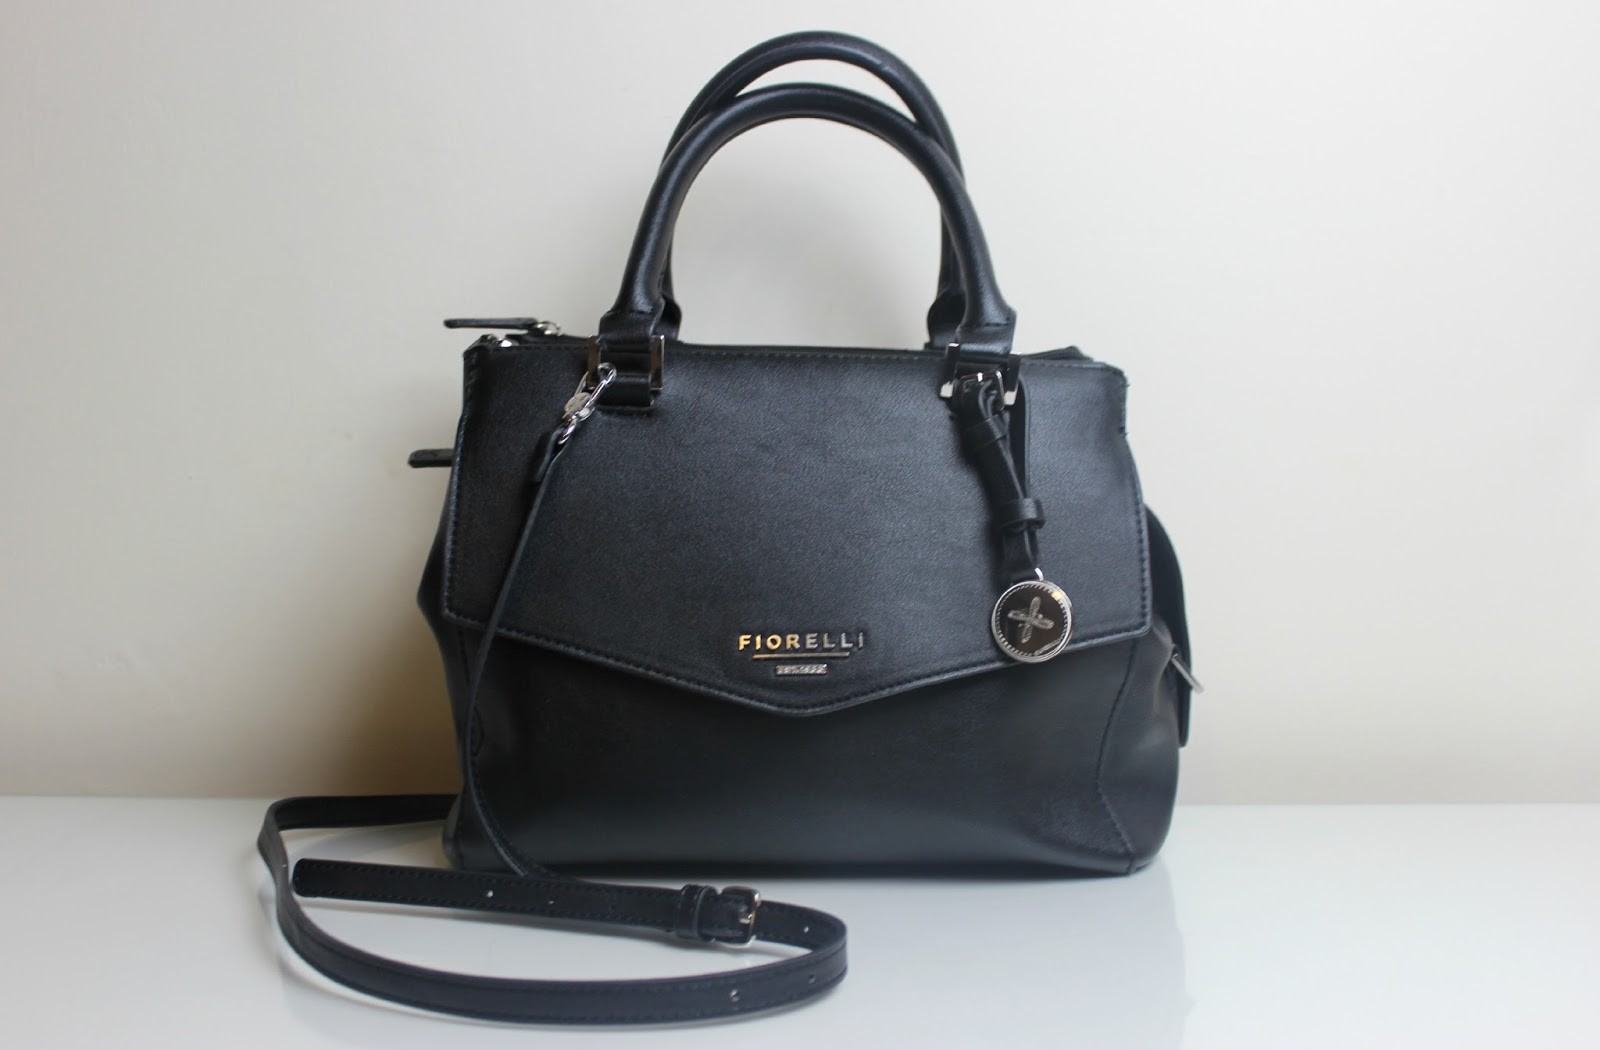 Image Result For Fiorelli Bags